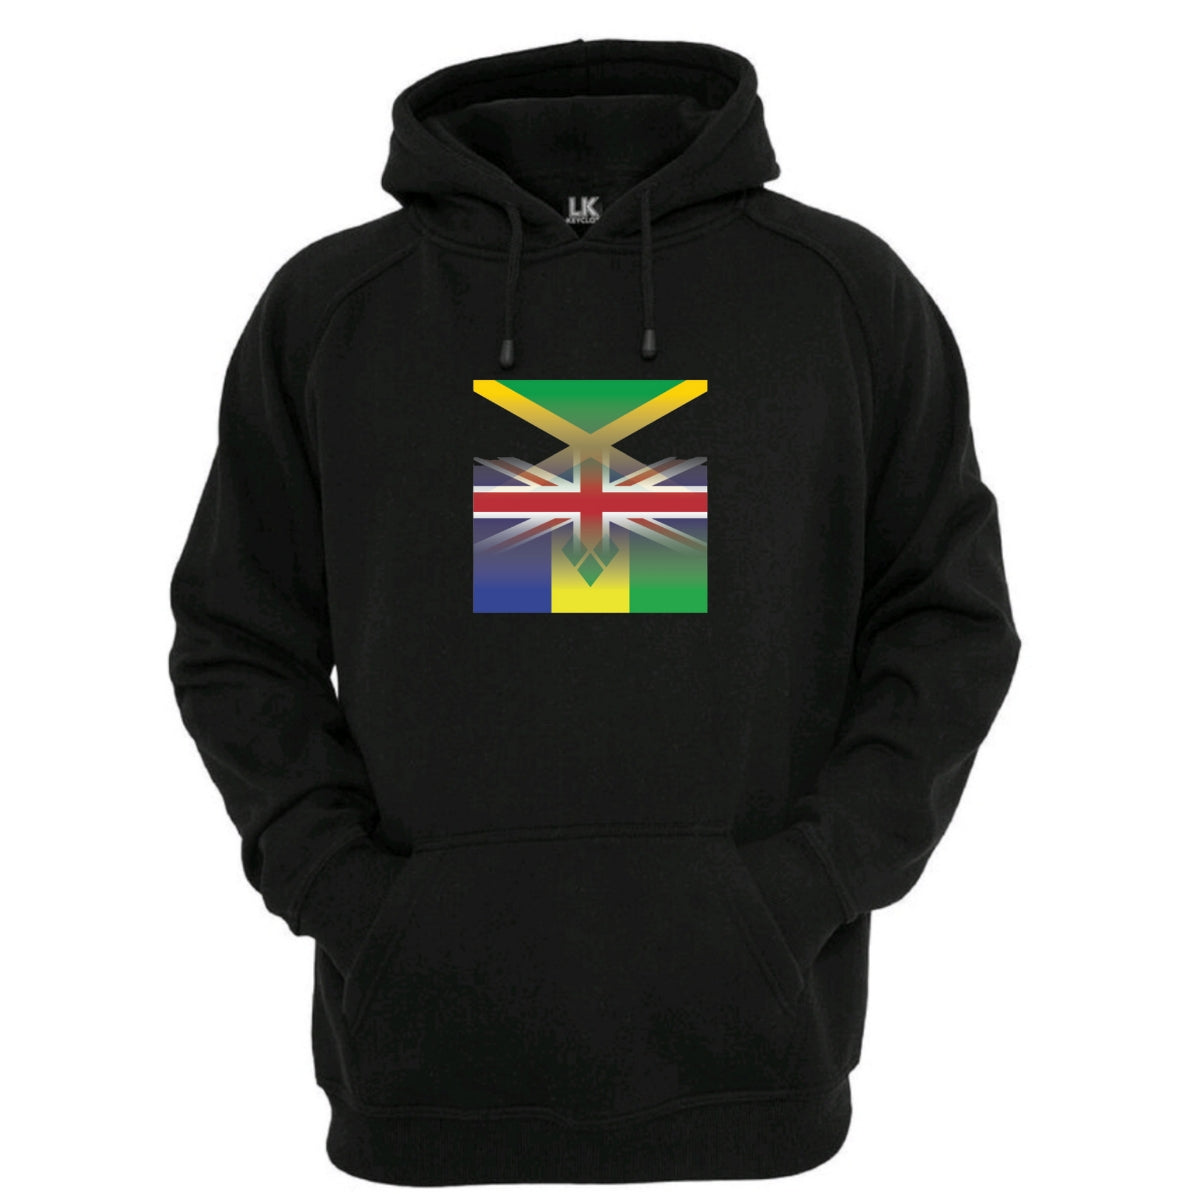 UK, Jamaican & St Vincents Flag Blended Hoodie